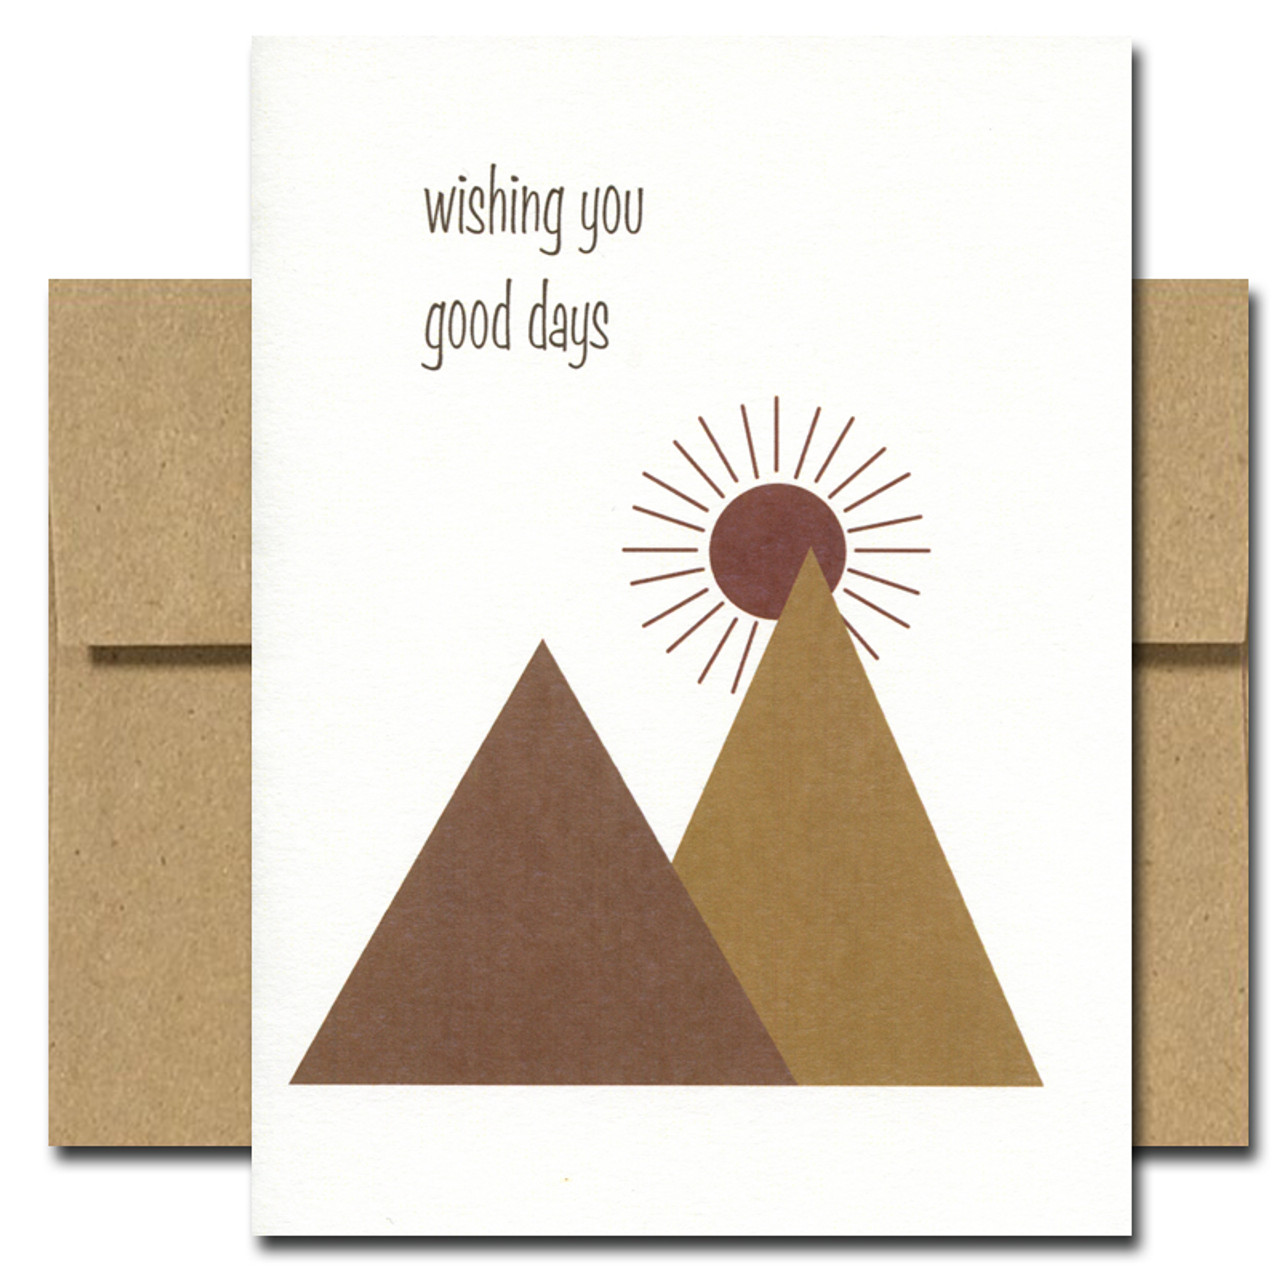 Thinking of you card has an abstract design of mountains and a sunrise and the words: Wishing you good days